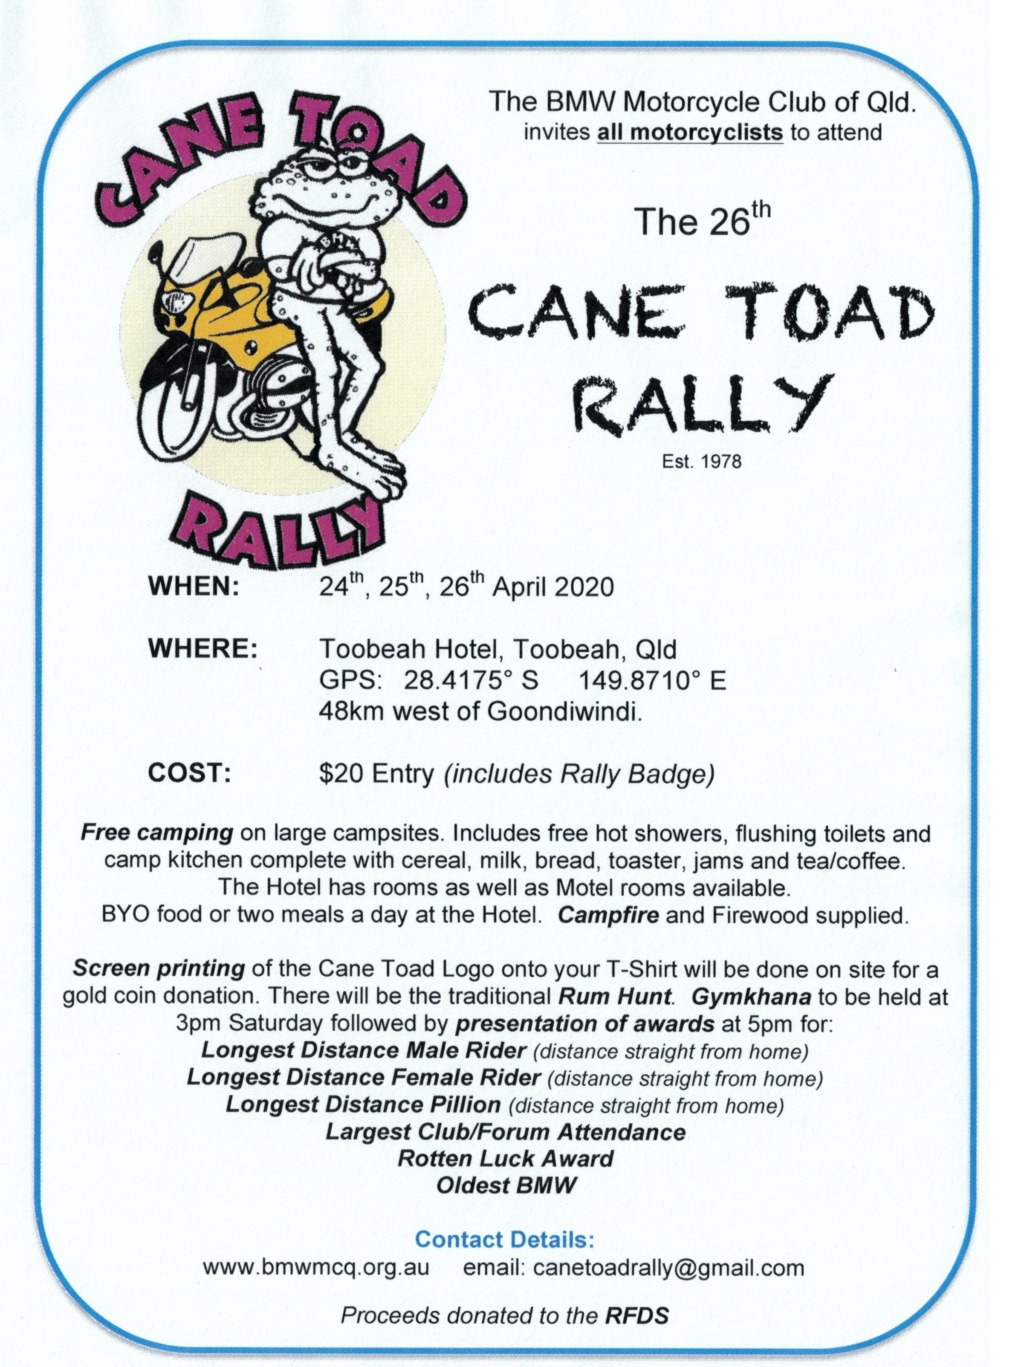 Cane Toad Rally 2020 Ctr_ad10